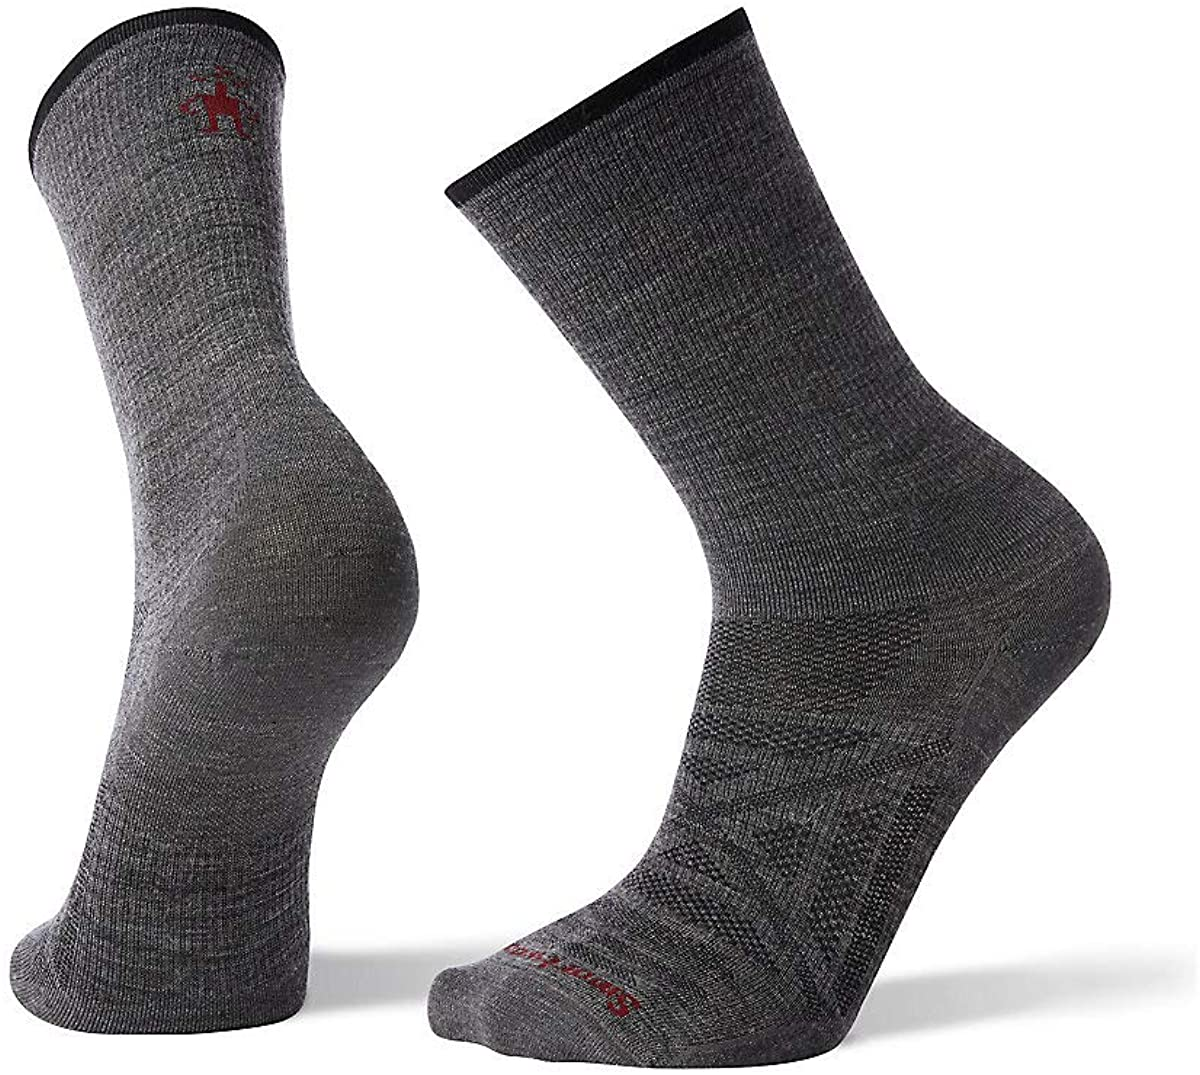 Unisex Smartwool PhD Outdoor Ultra Light Crew Hiking Socks in Medium Gray from the front